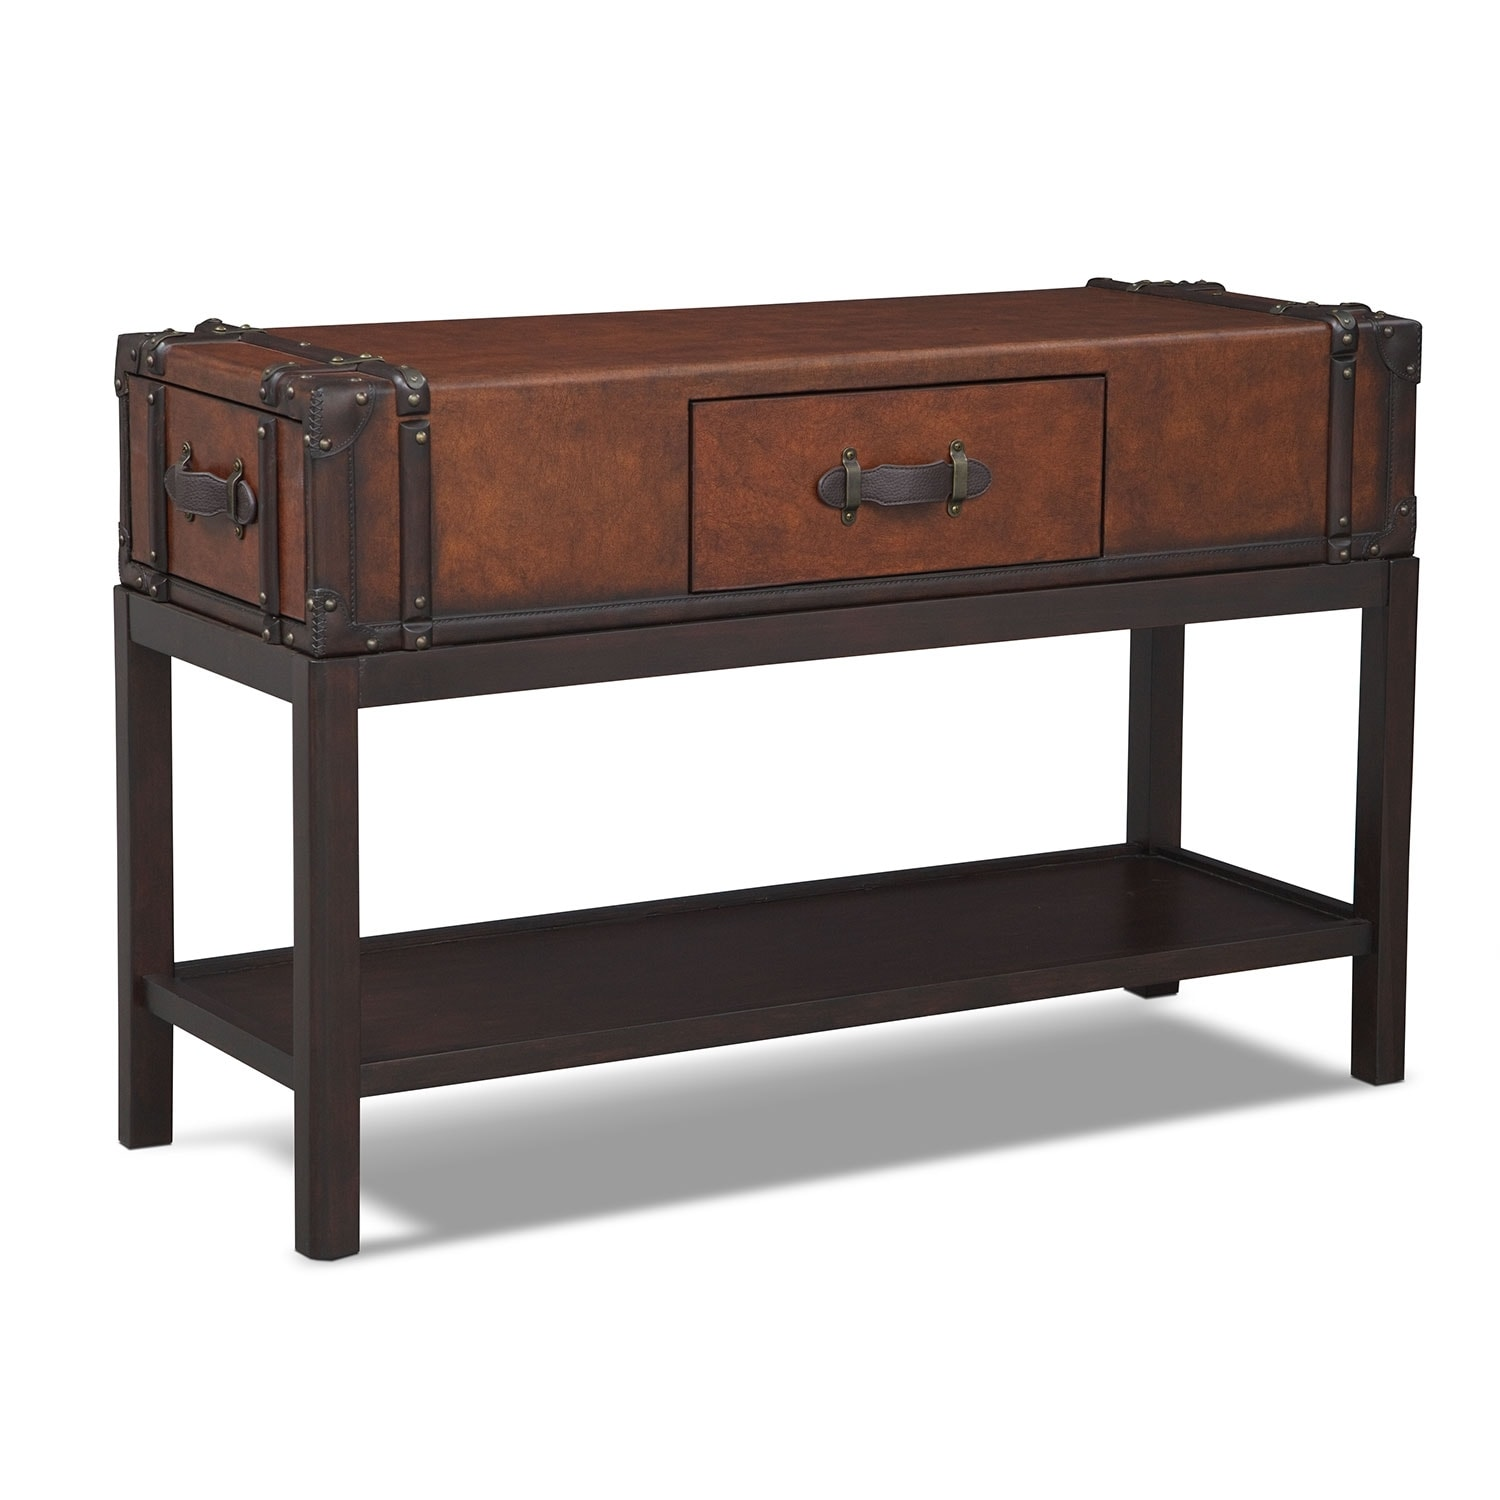 Expedition Sofa Table - Brown